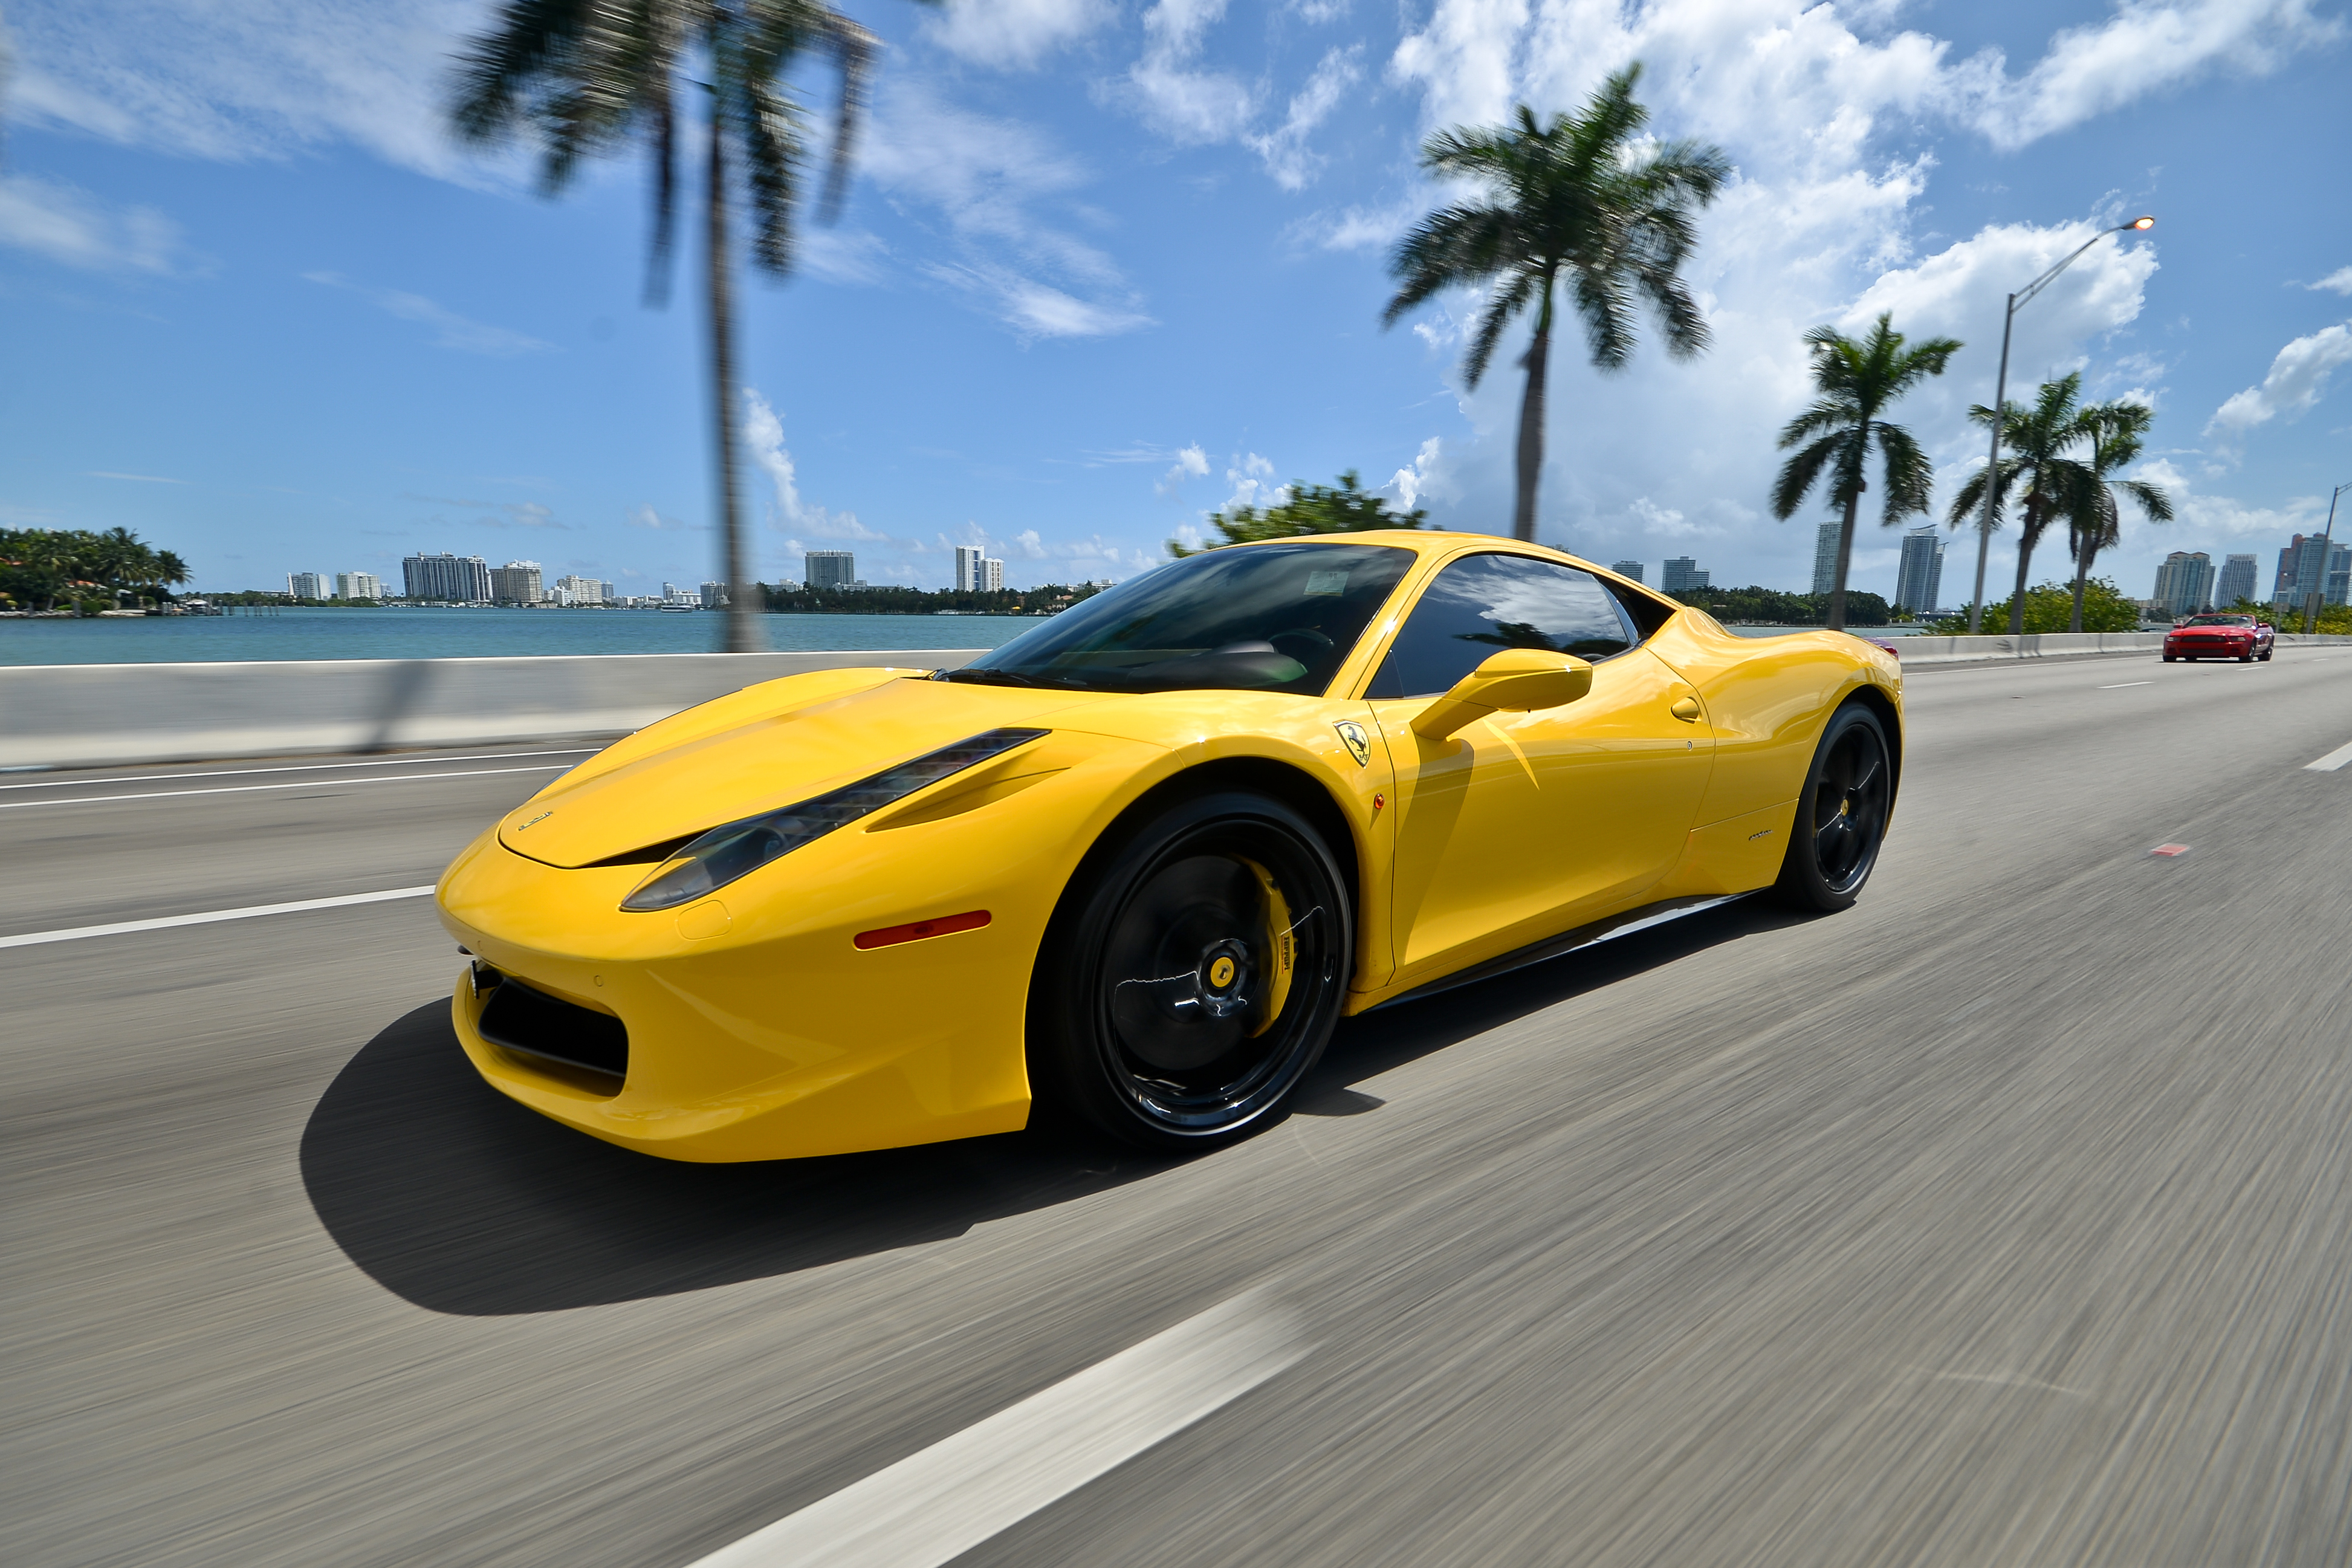 bmw in listing beach image alquiler new miami brand ferrari rent rental convertible for ccm